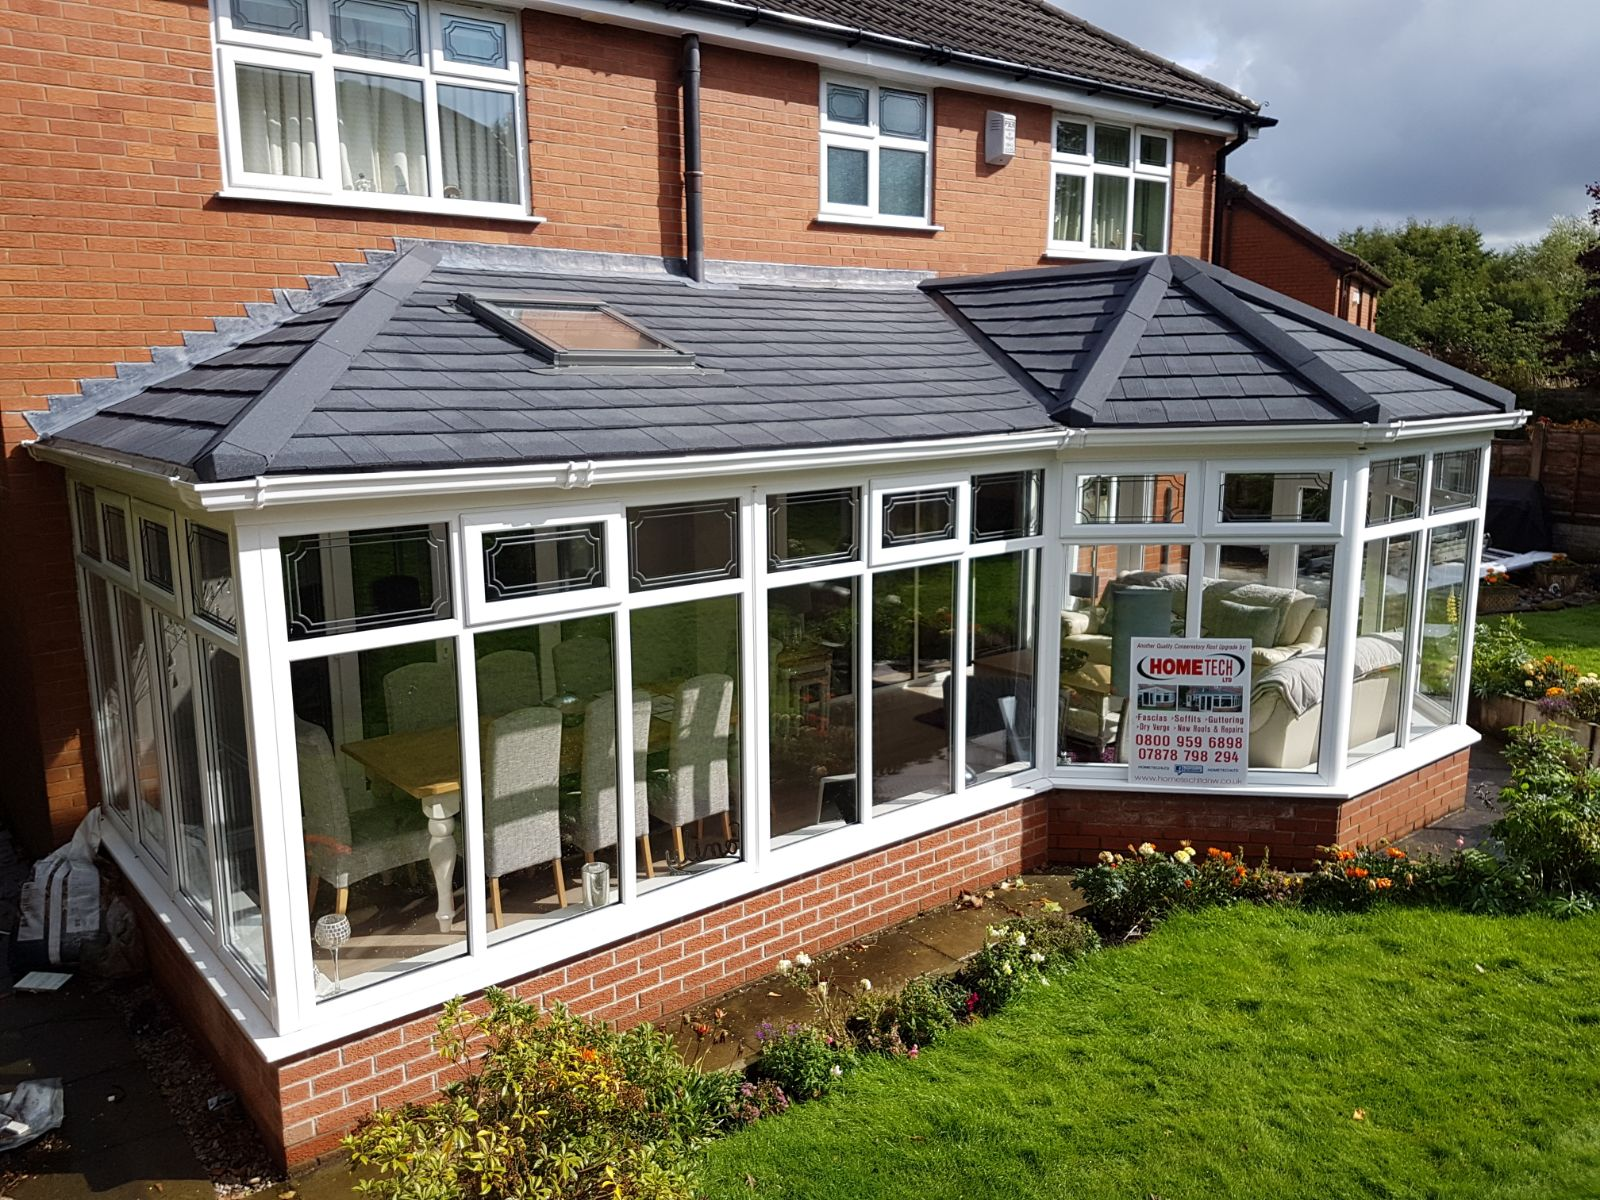 image showing conservatory with advertisement to contact a roofer in wigan